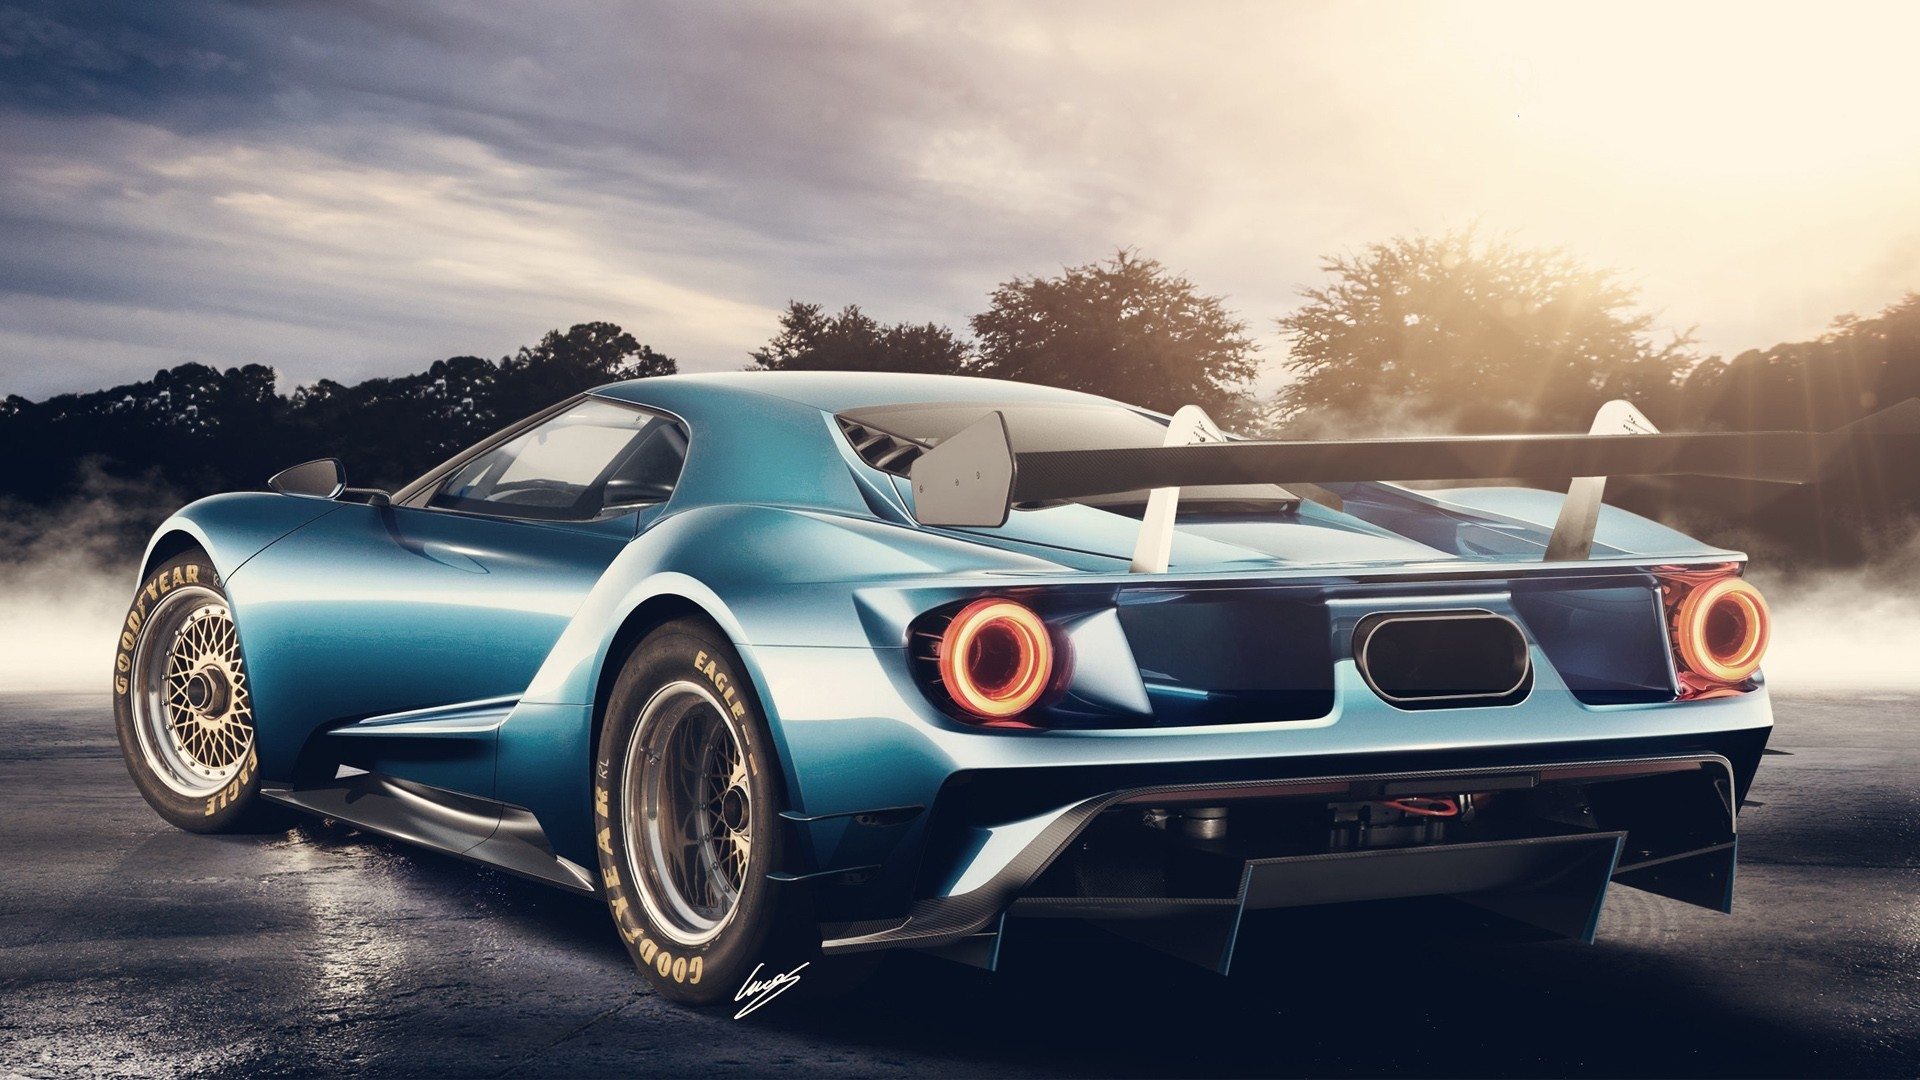 2017 ford gt concept wallpaper hd car wallpapers id 5441 for Ford gt 2017 motor